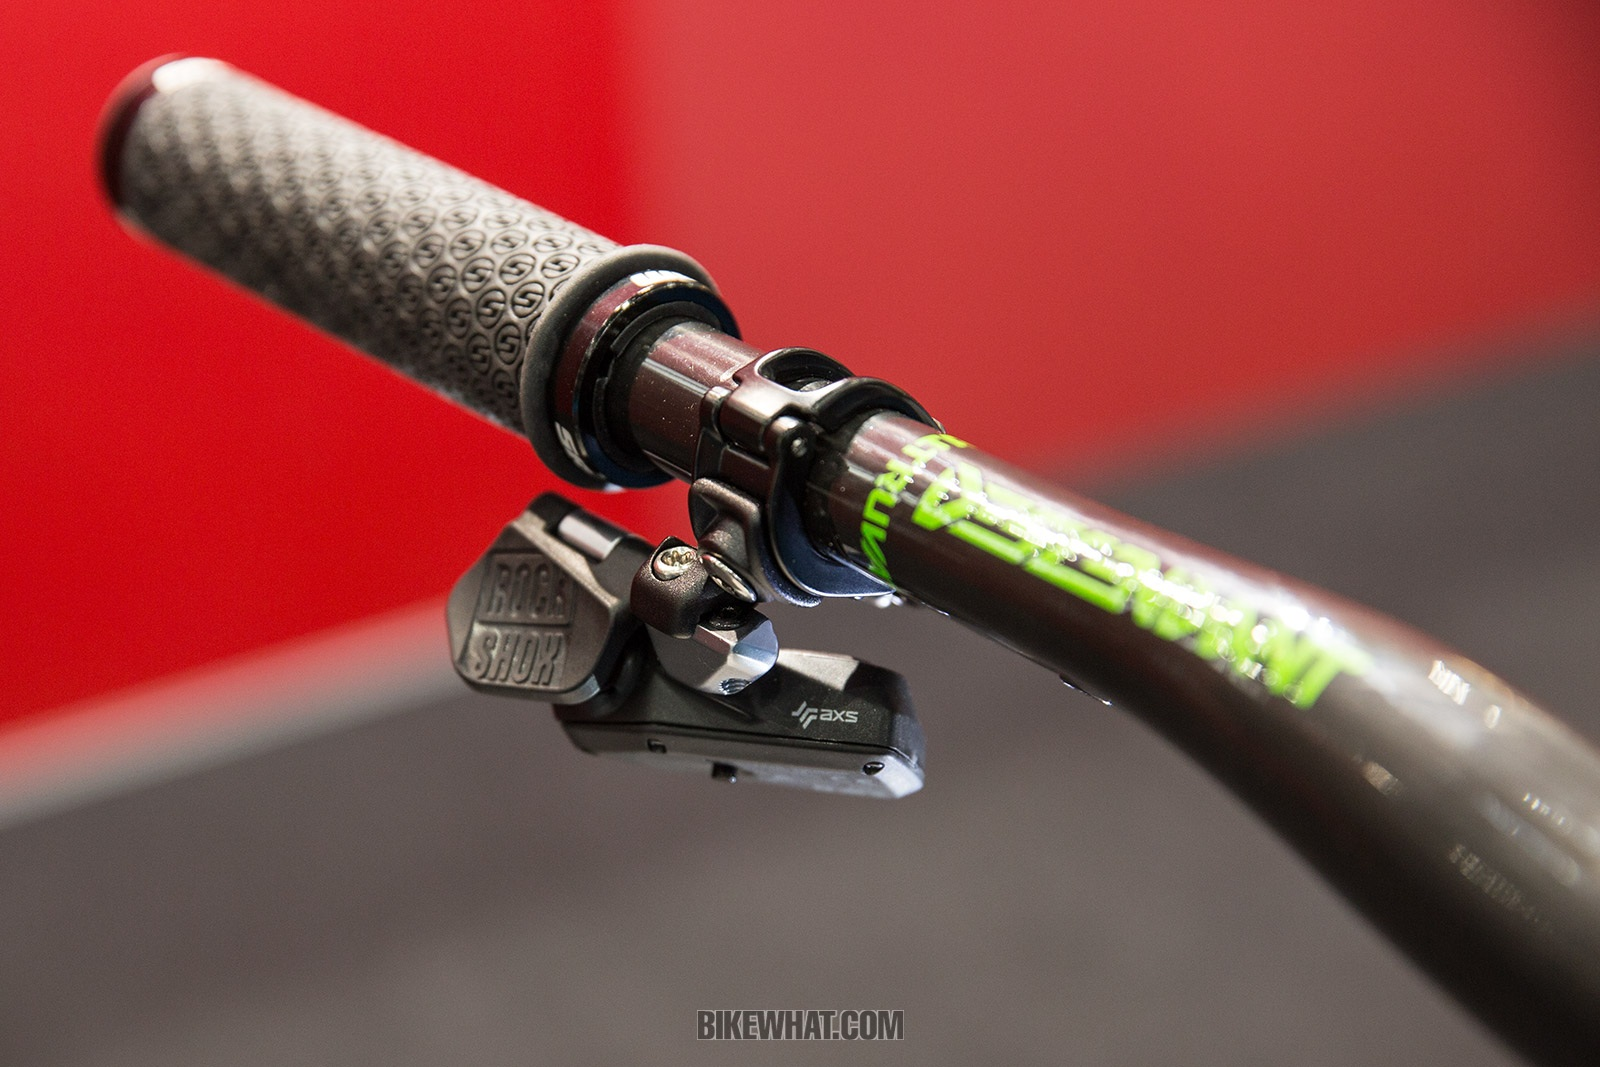 Feature_TaipeiCycle_2019_Sram_Axs_2.jpg